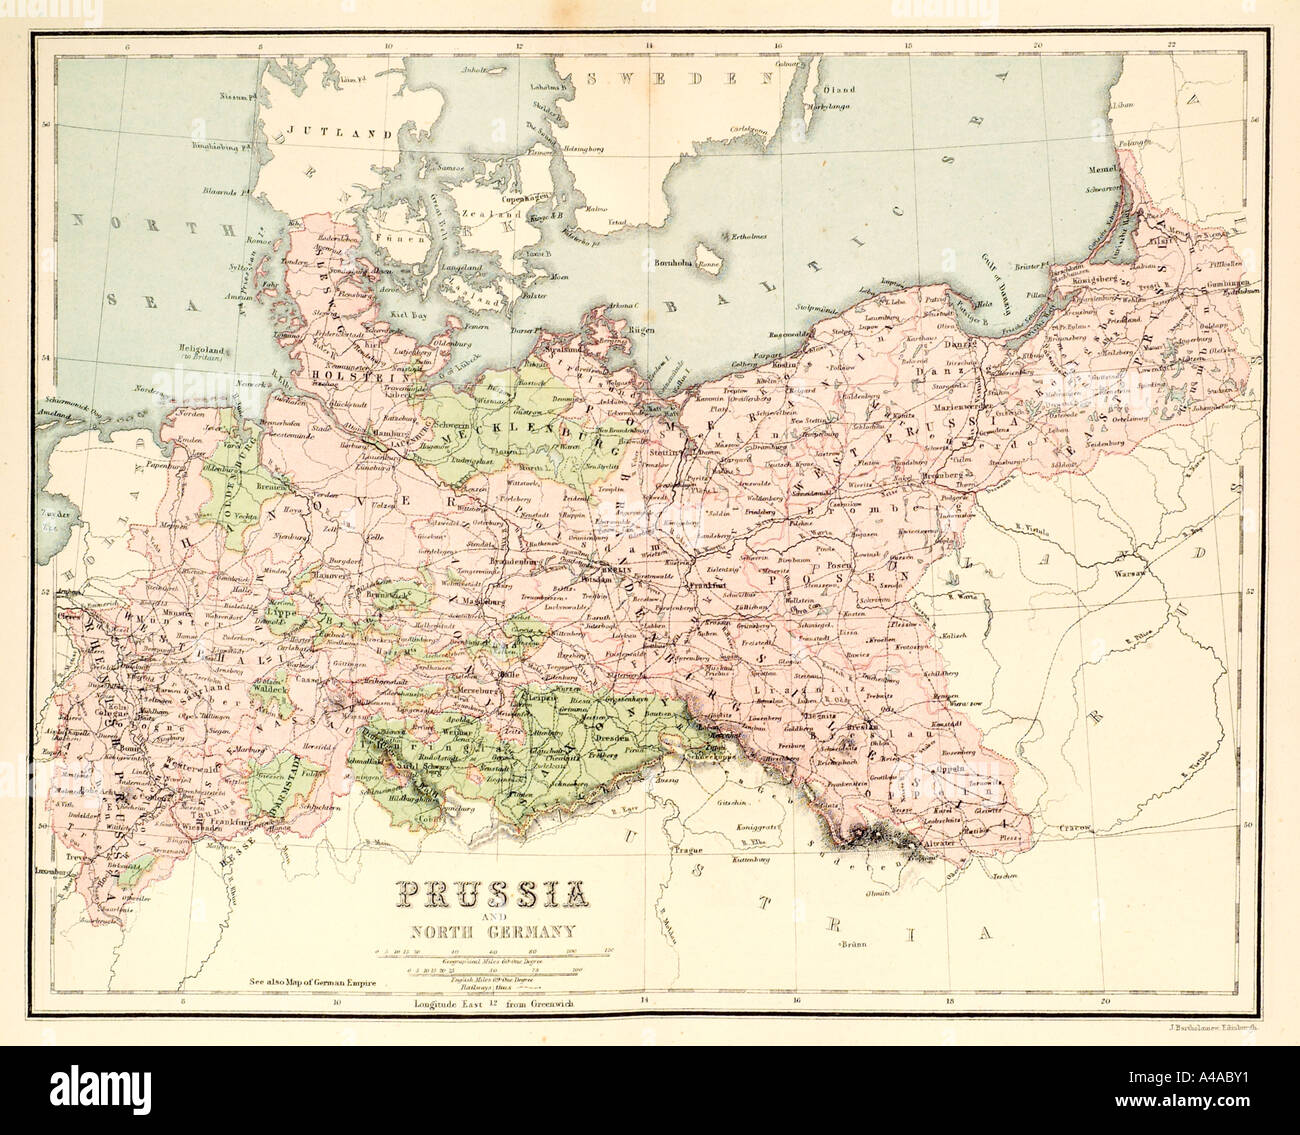 map cartography prussia plan route navigate road river europe - Stock Image